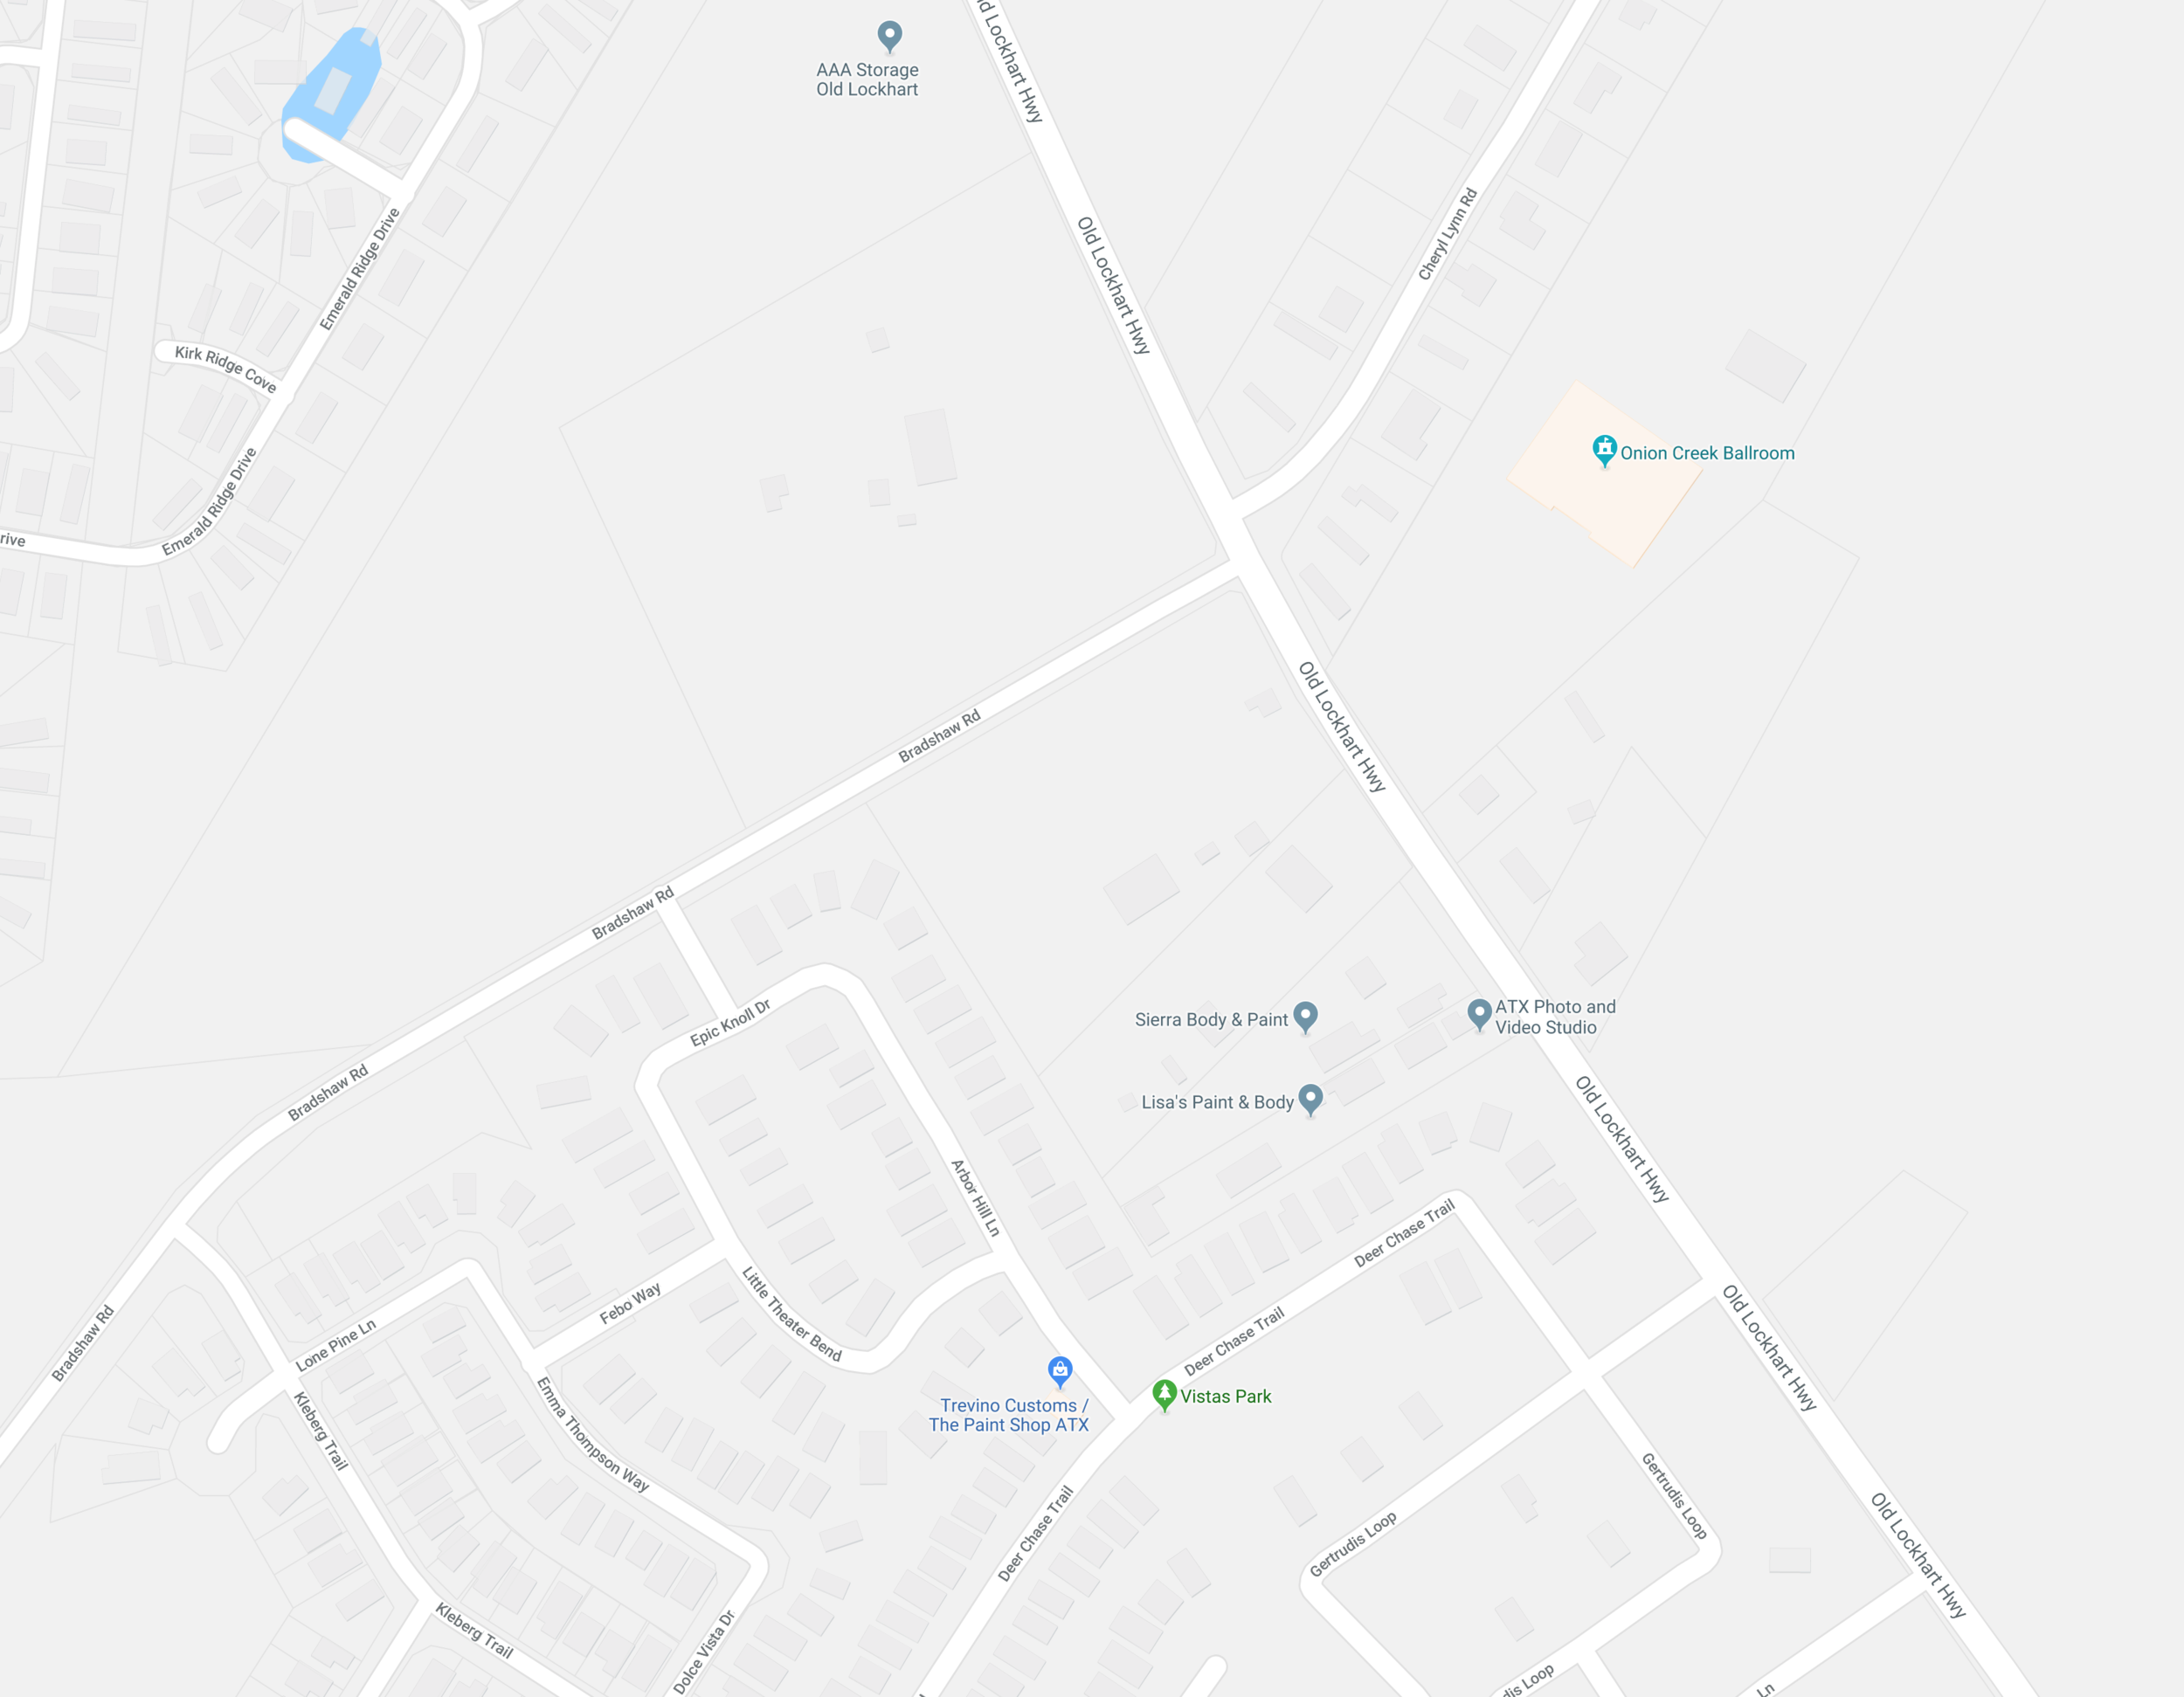 We are located on Old Lockhart Rd. Search for ATX Photo & Video Studio on Google Maps. Or in the same complex is Lisa's Body Shop and we are diagonally across the street from the Onion Creek Ballroom.